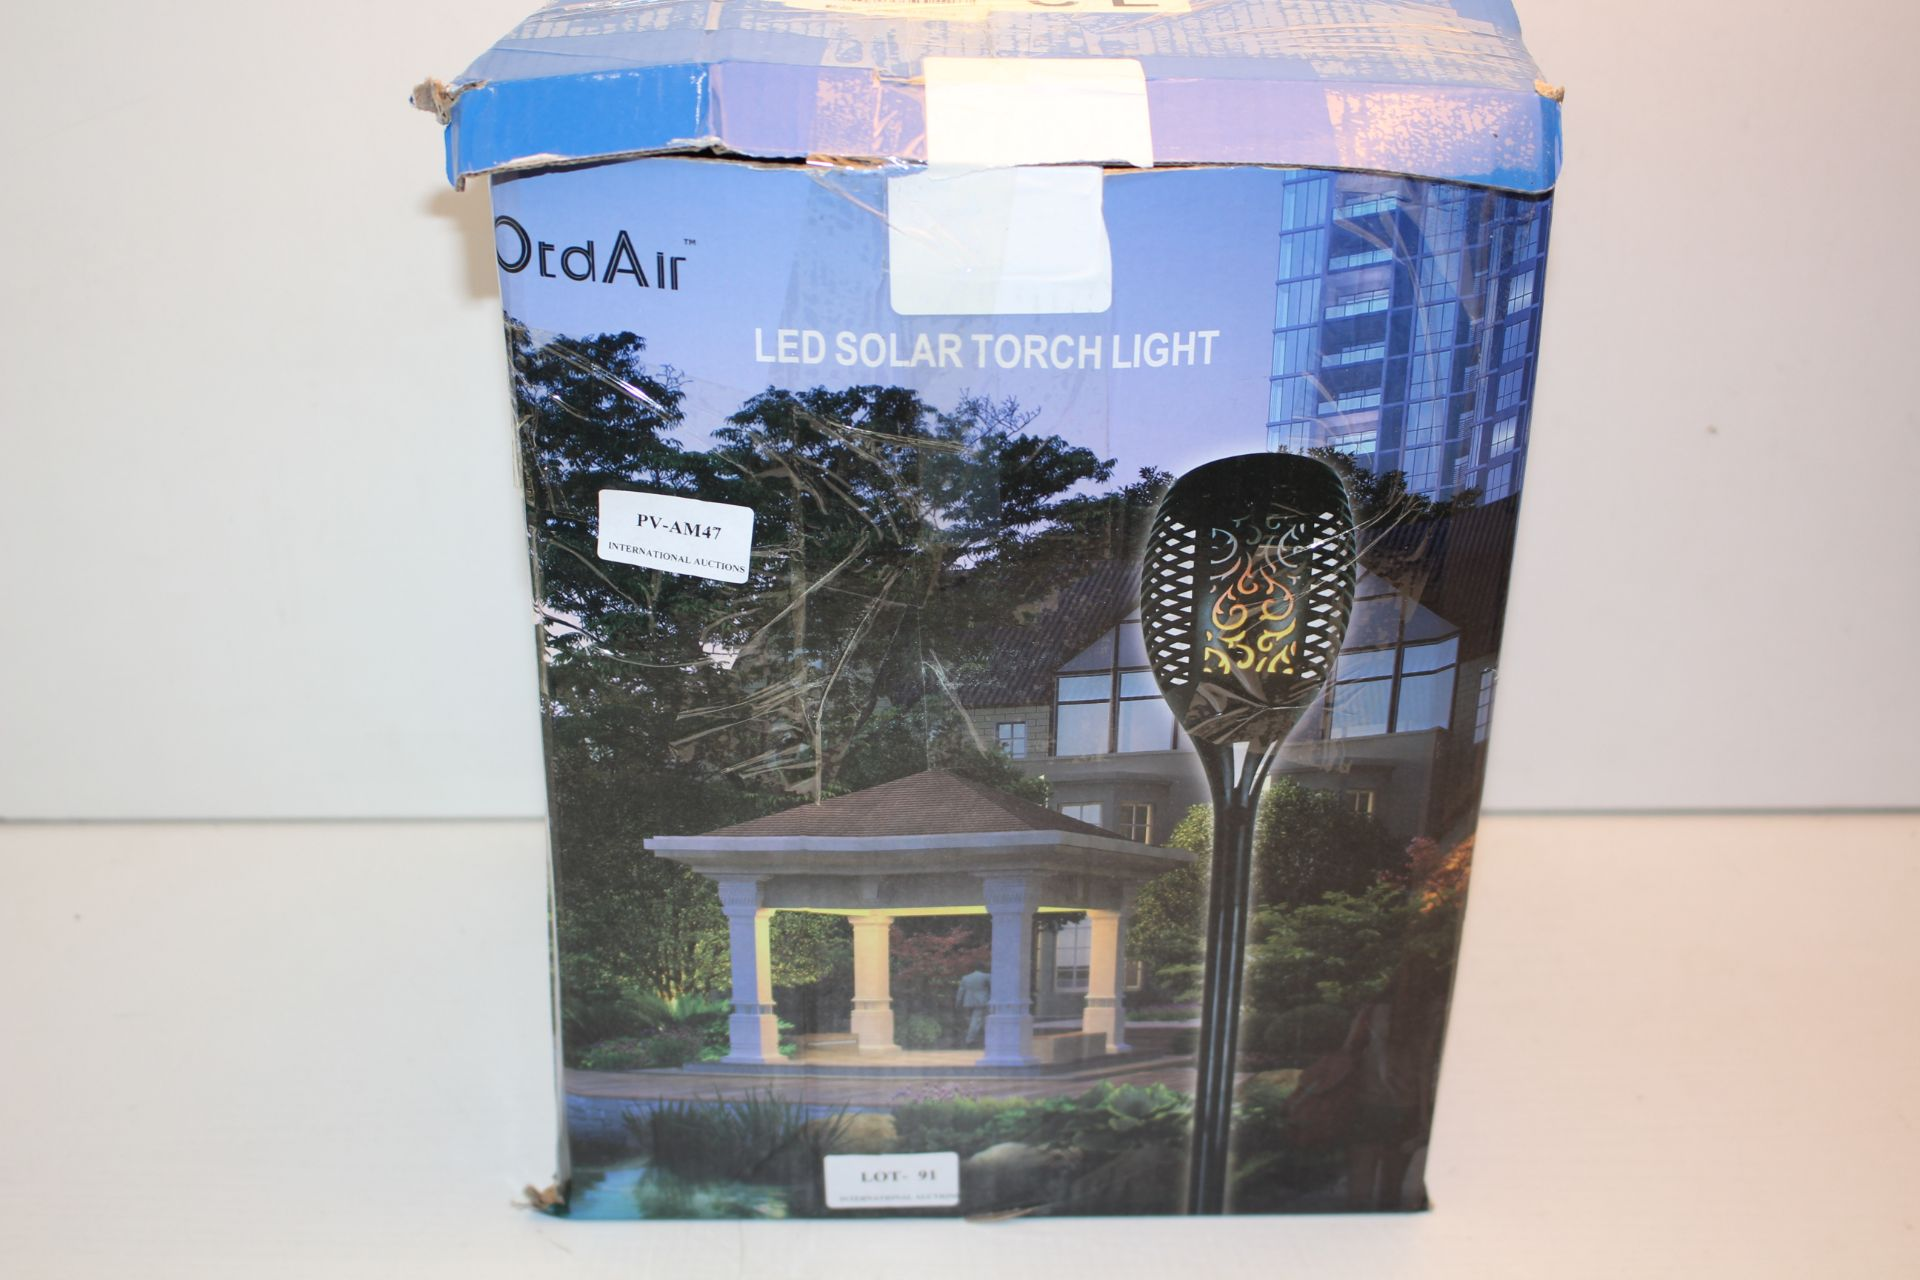 BOXED ORD AIR LED SOLAR TORCH LIGHT Condition ReportAppraisal Available on Request- All Items are